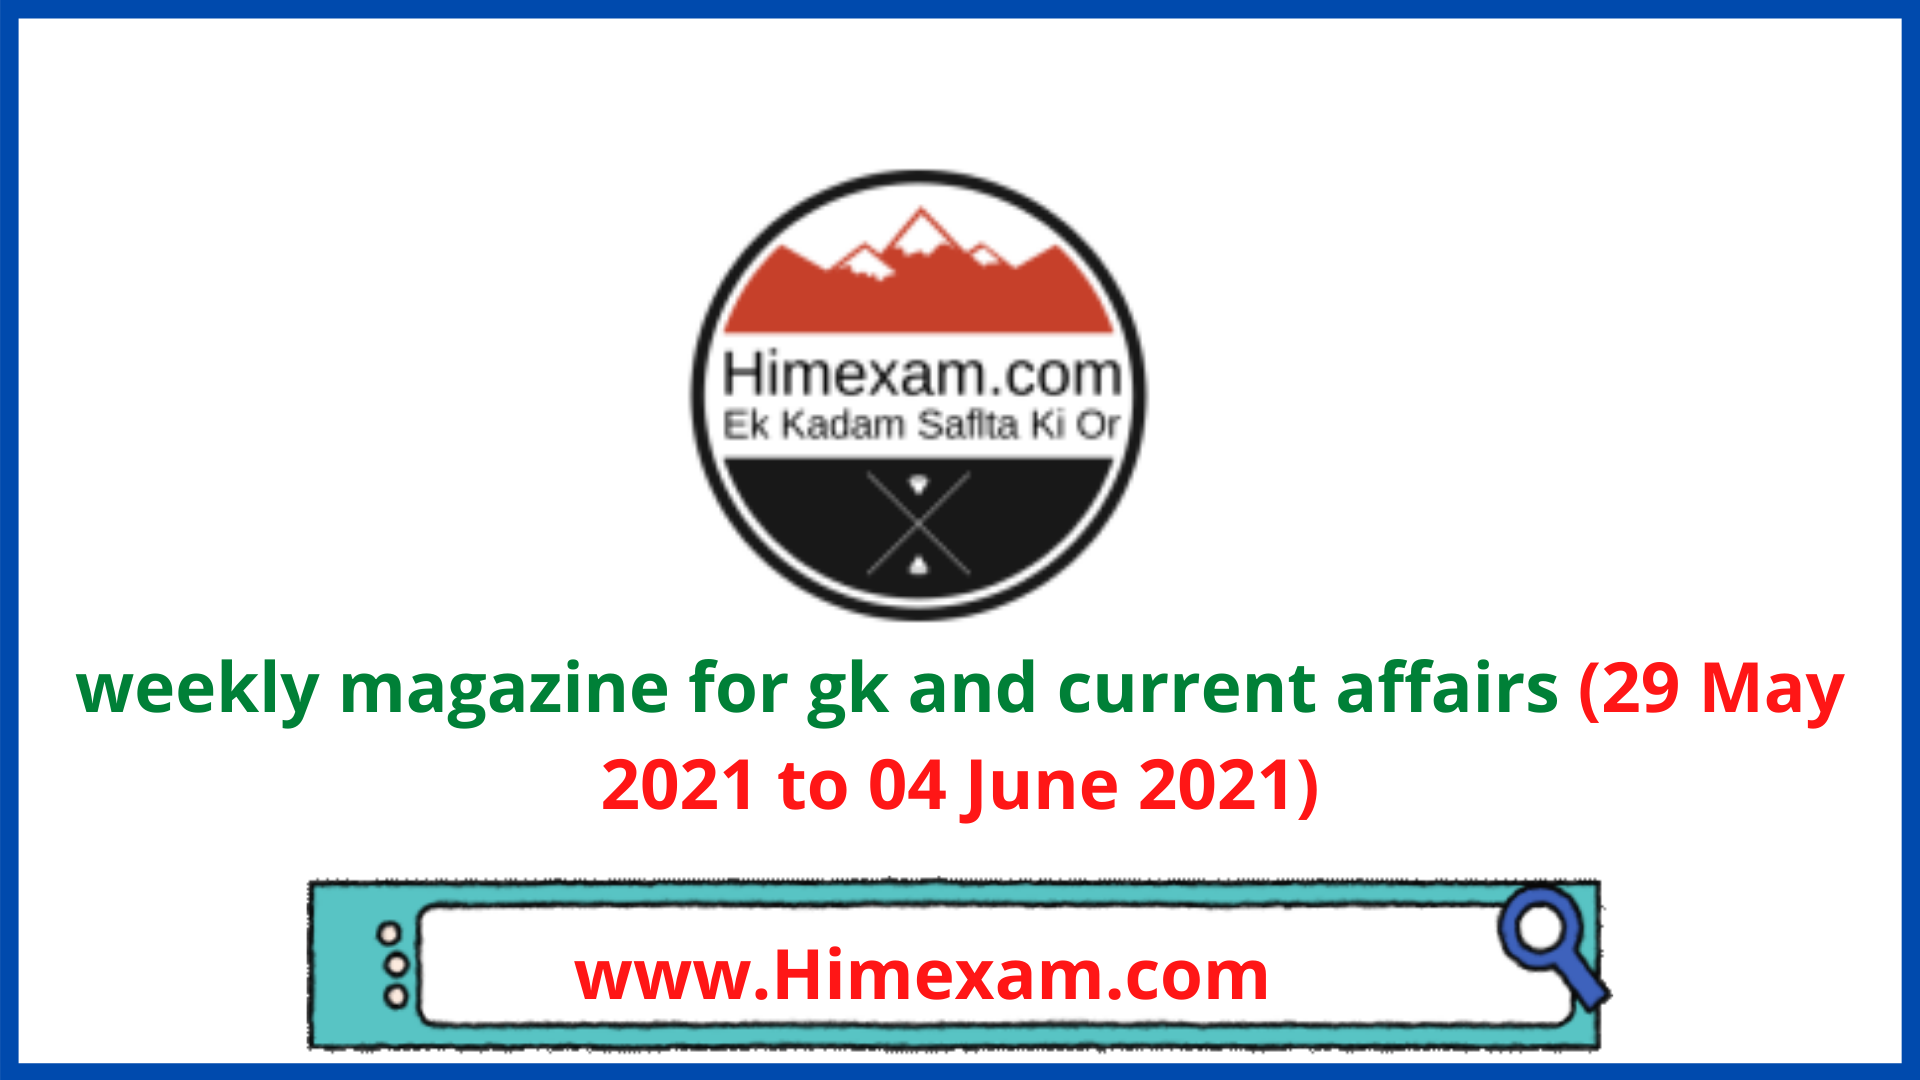 weekly magazine for gk and current affairs (29 May 2021 to 04 June 2021)